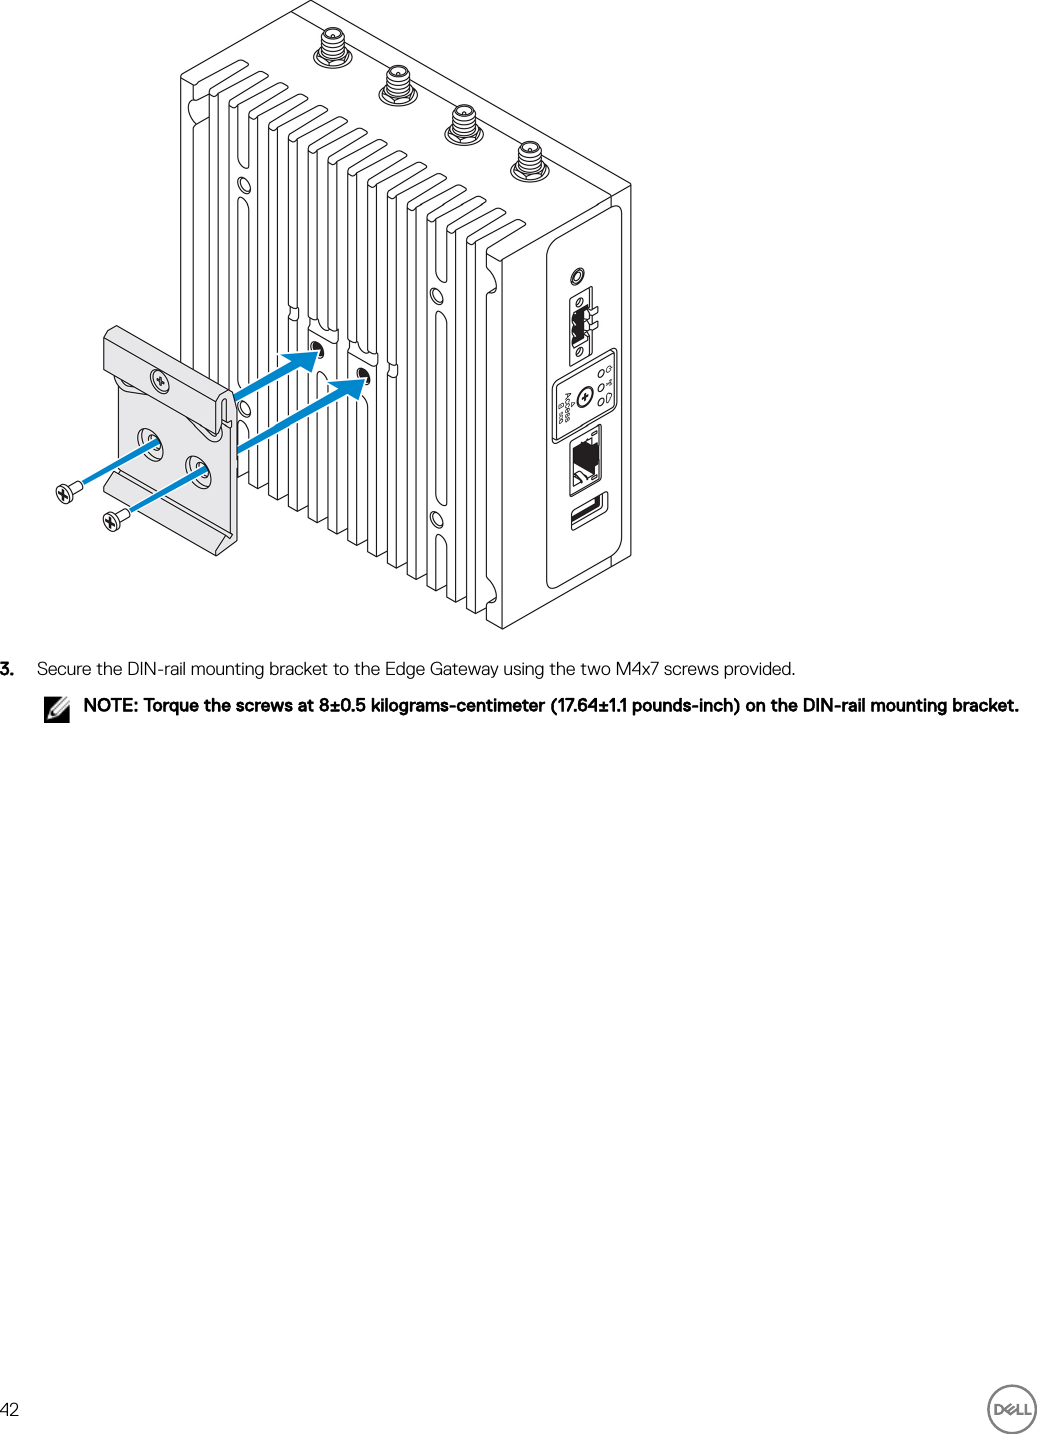 Dell edge gateway 3000 series 3001 Installation And